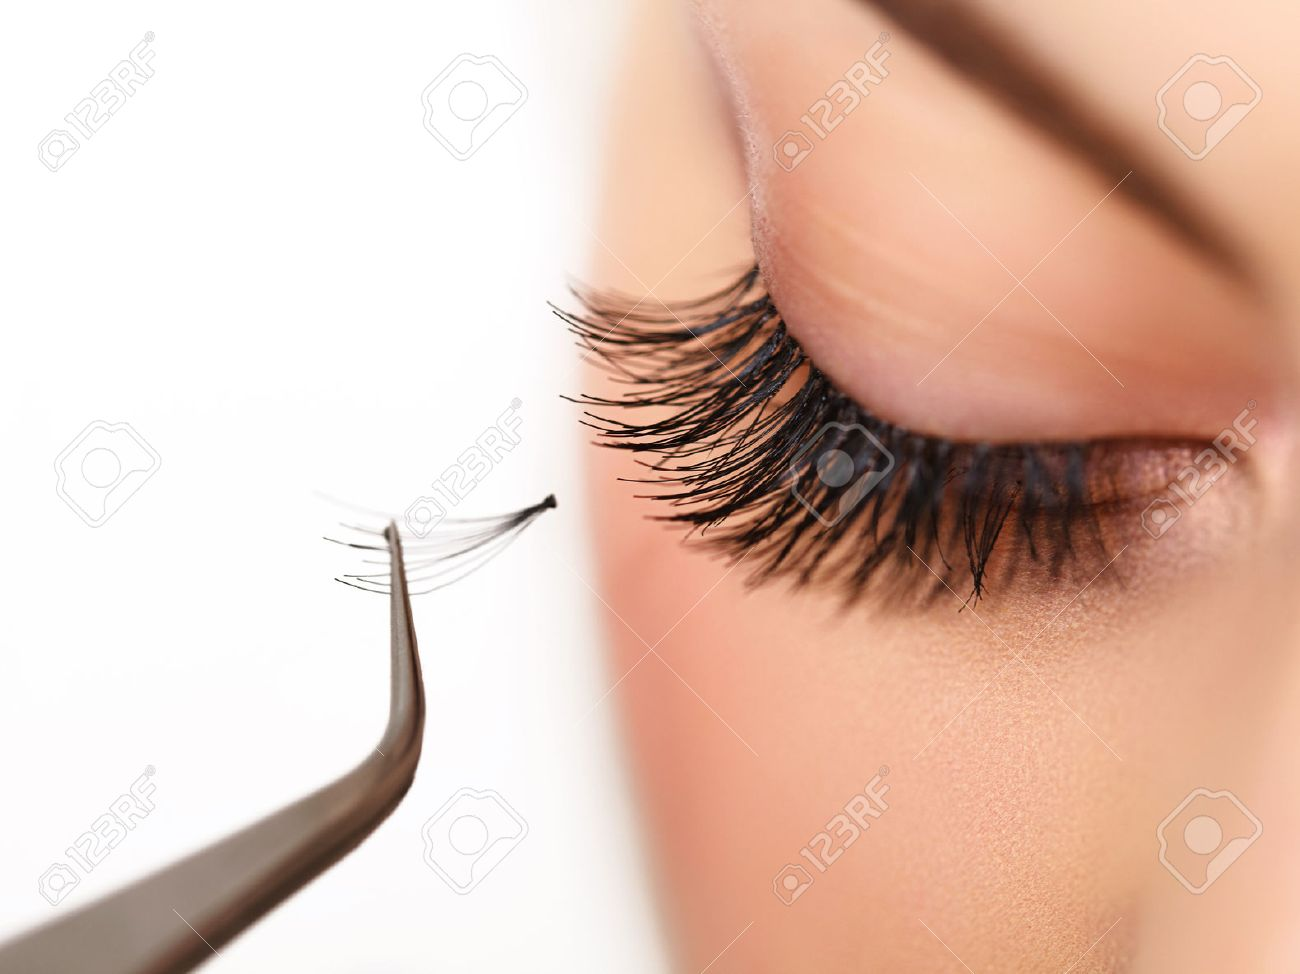 Woman Eye With Long Eyelashes On Eyelash Extension Stock Photo ...